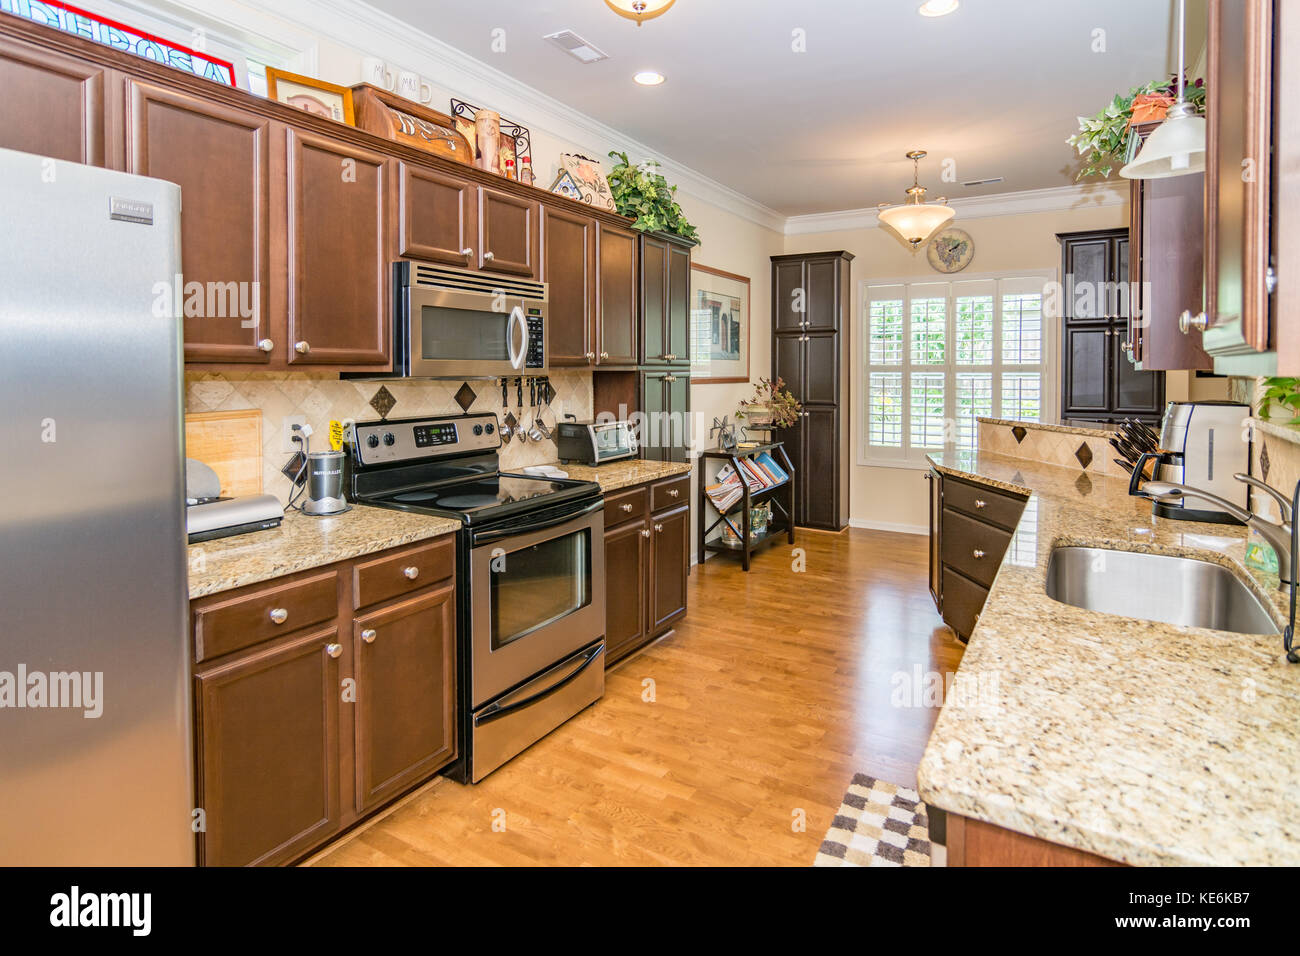 Kitchen Interior Of Middle Class American Home In Kentucky Usa Stock